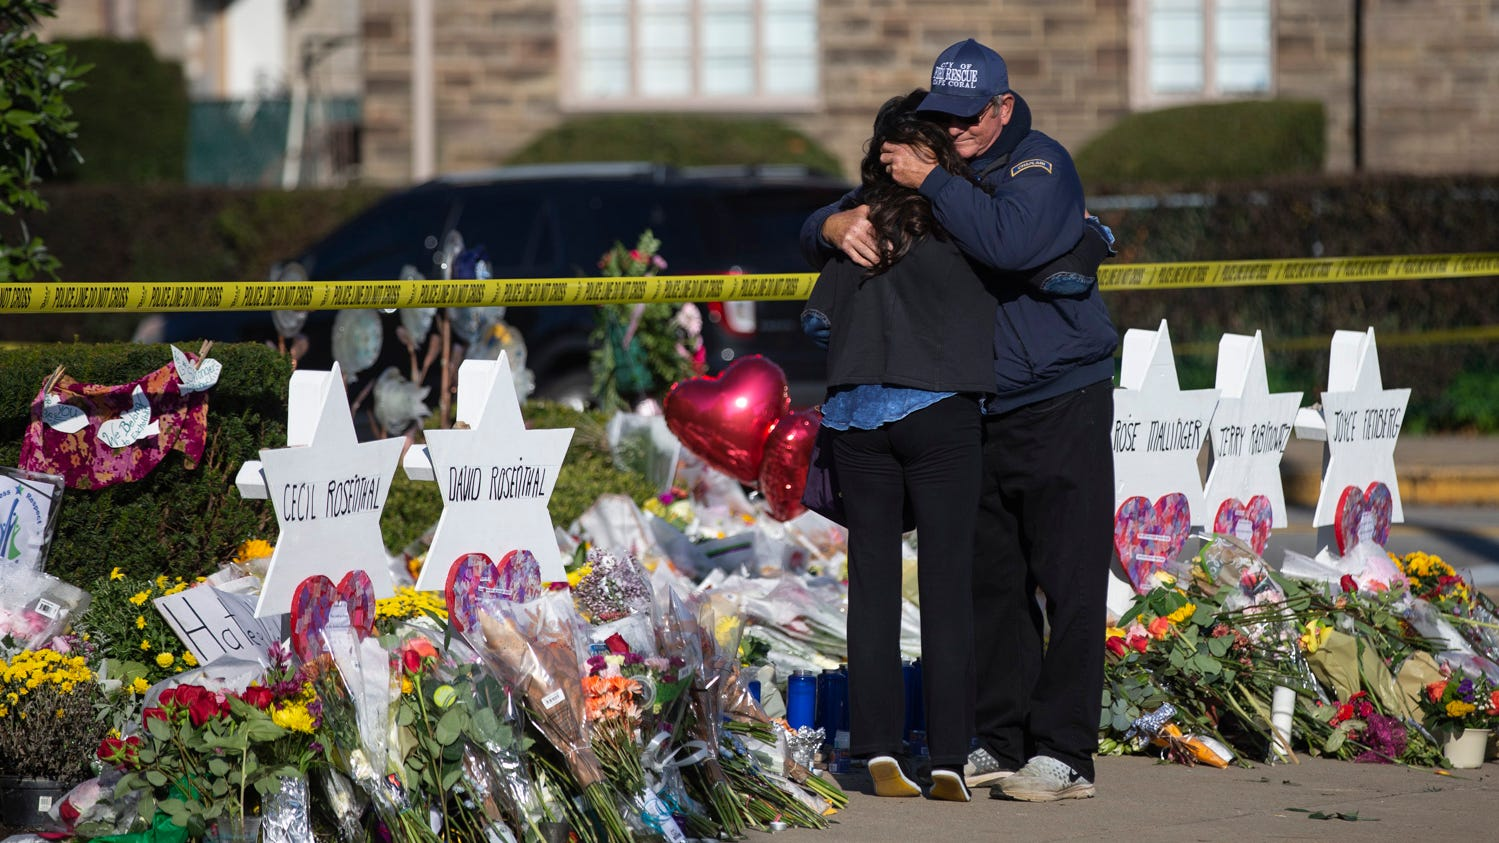 "Florida native and chaplain Bob Ossler, right, hugs Julianne Statnick as she visits a tribute to shooting victims along Shady Avenue in Pittsburgh, Pennsylvania on Tuesday morning. ""I grew up here,"" Statnick said. ""I was in Ireland when this happened so now I'm just here spreading love."""